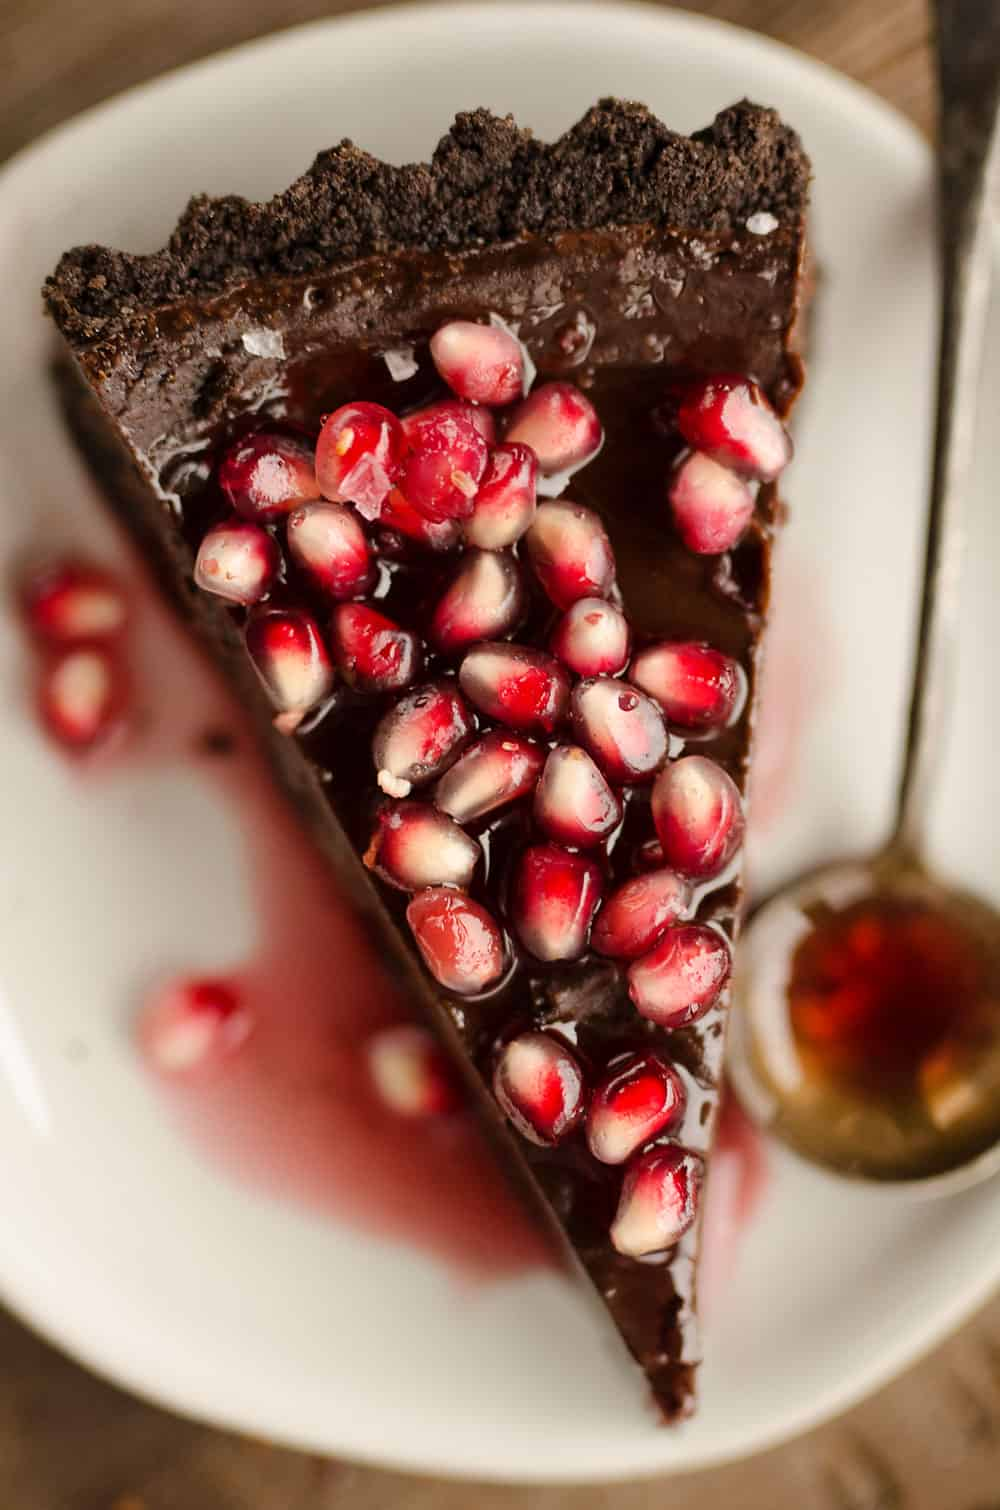 Salted Dark Chocolate Pomegranate Tart slice on plate